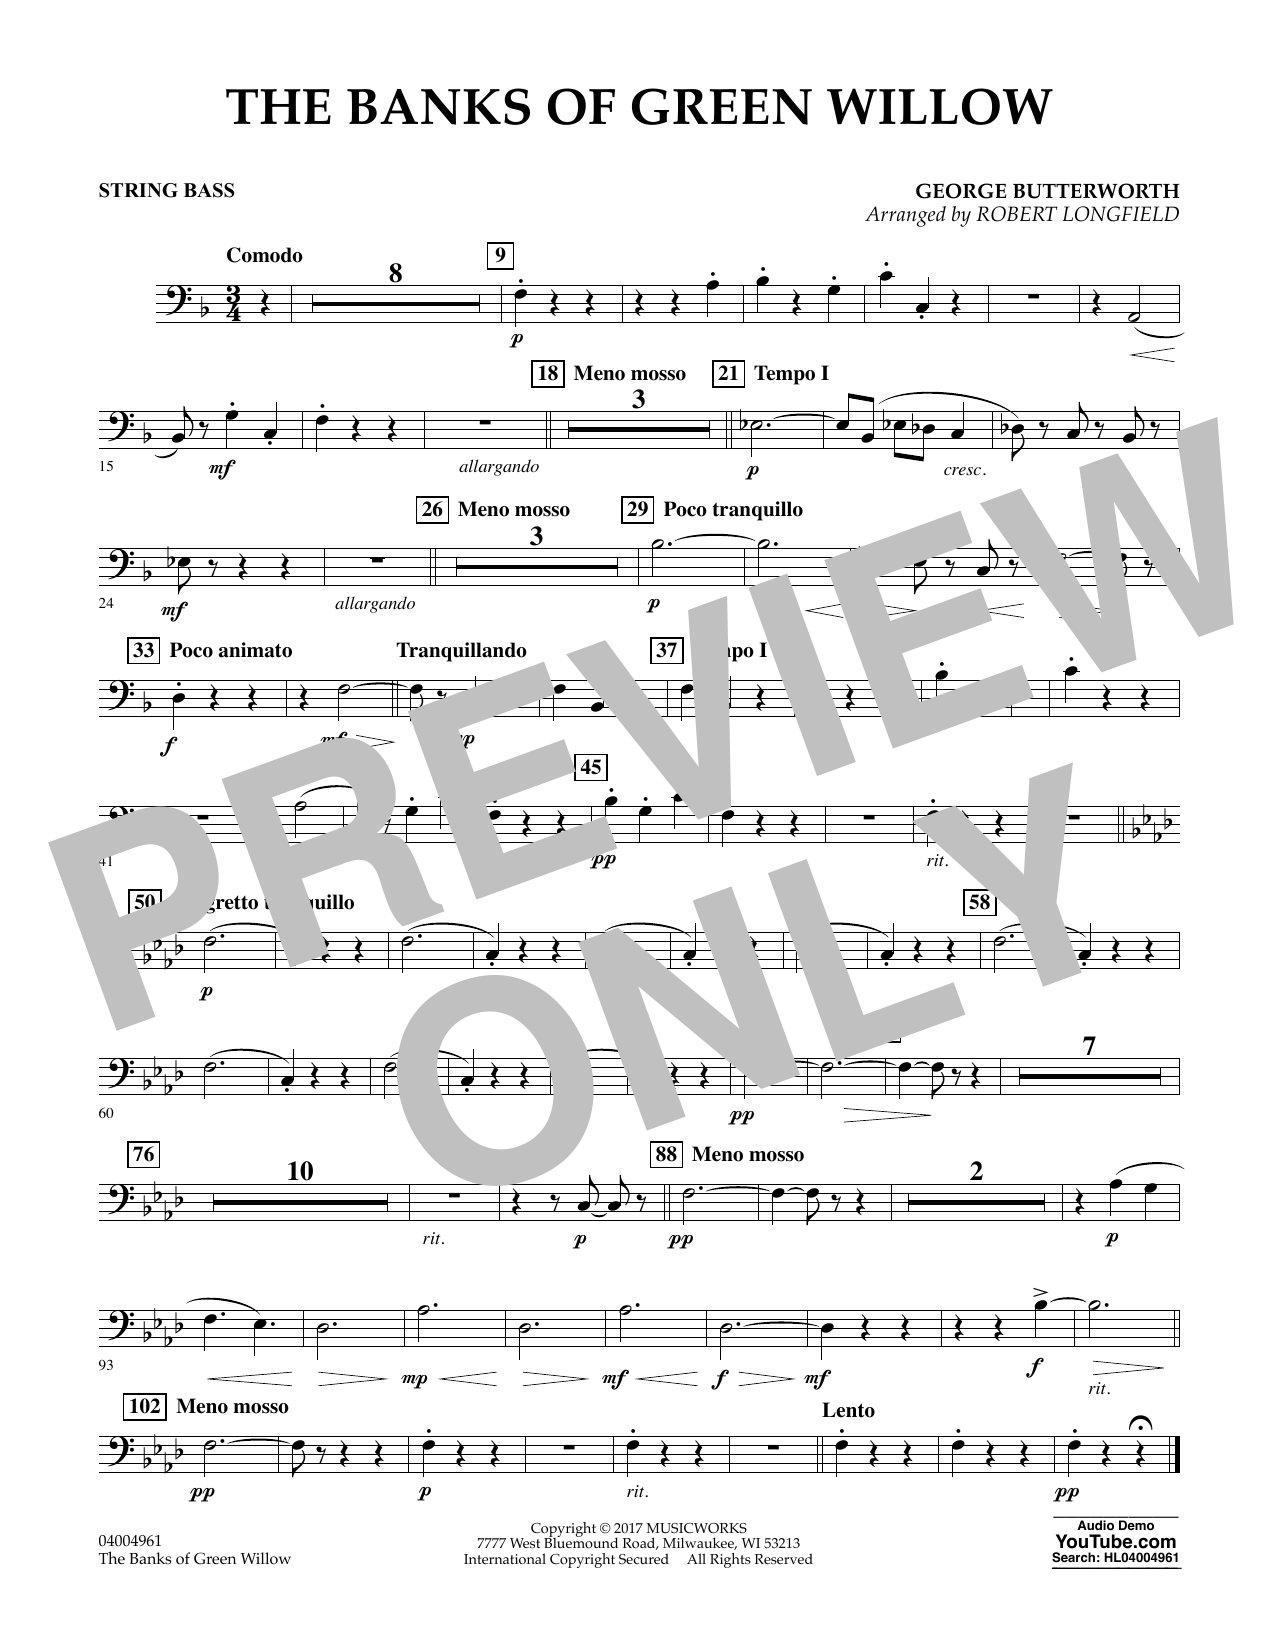 Robert Longfield The Banks of Green Willow - String Bass sheet music notes and chords. Download Printable PDF.